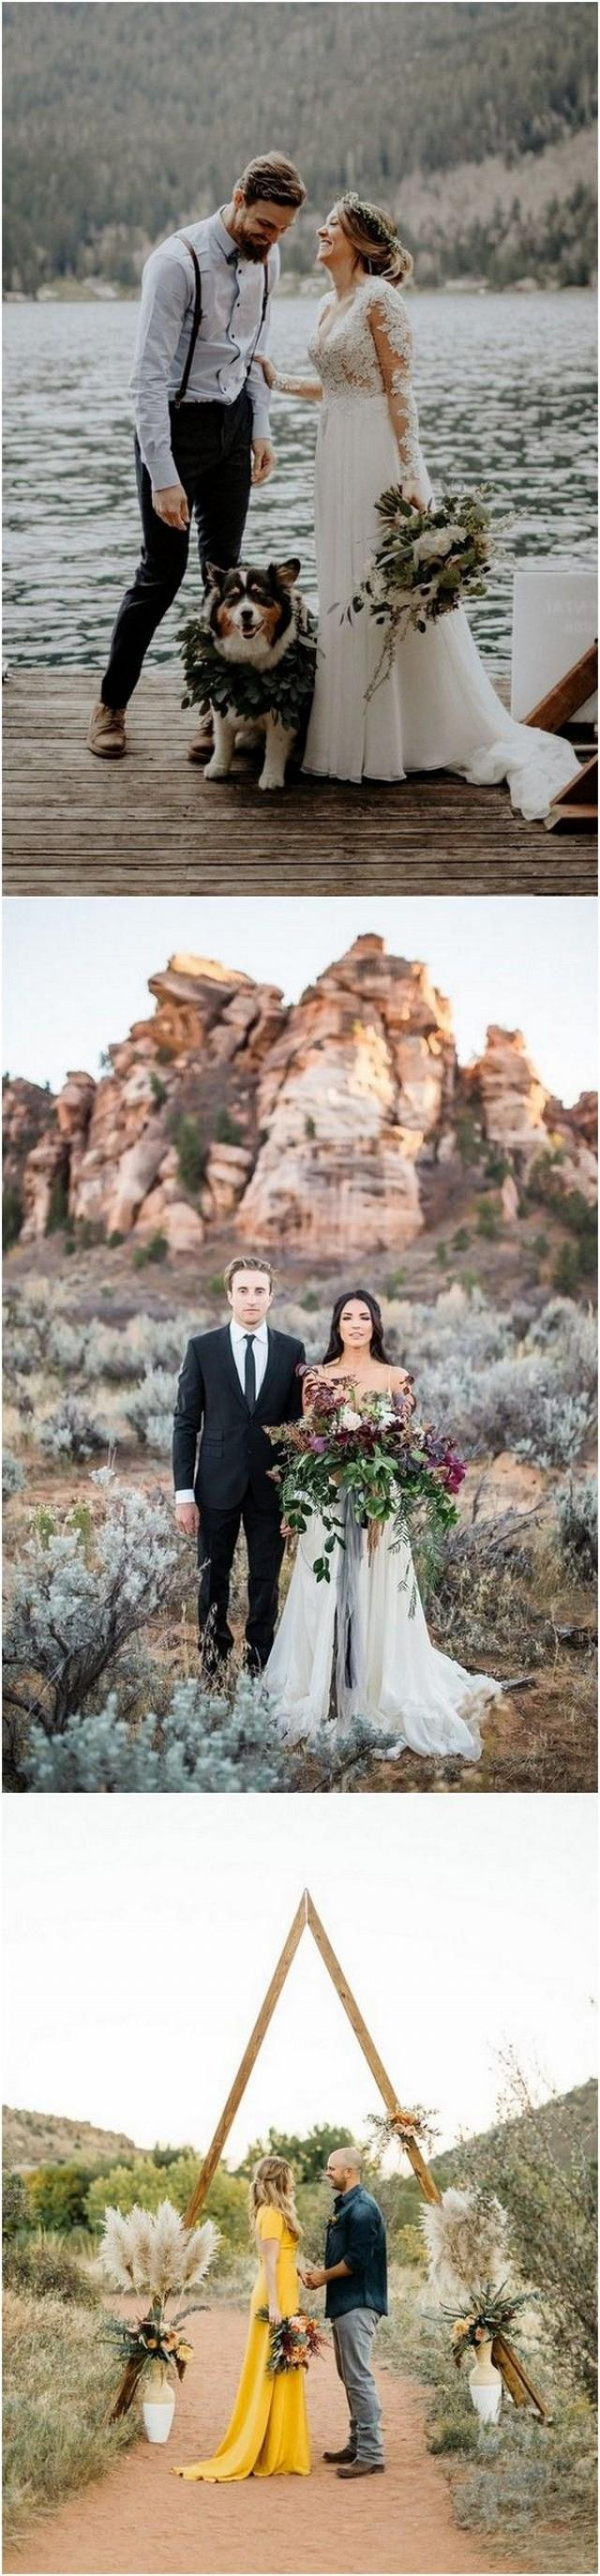 wedding photo - Top 20 Elopement Ideas You'll Love